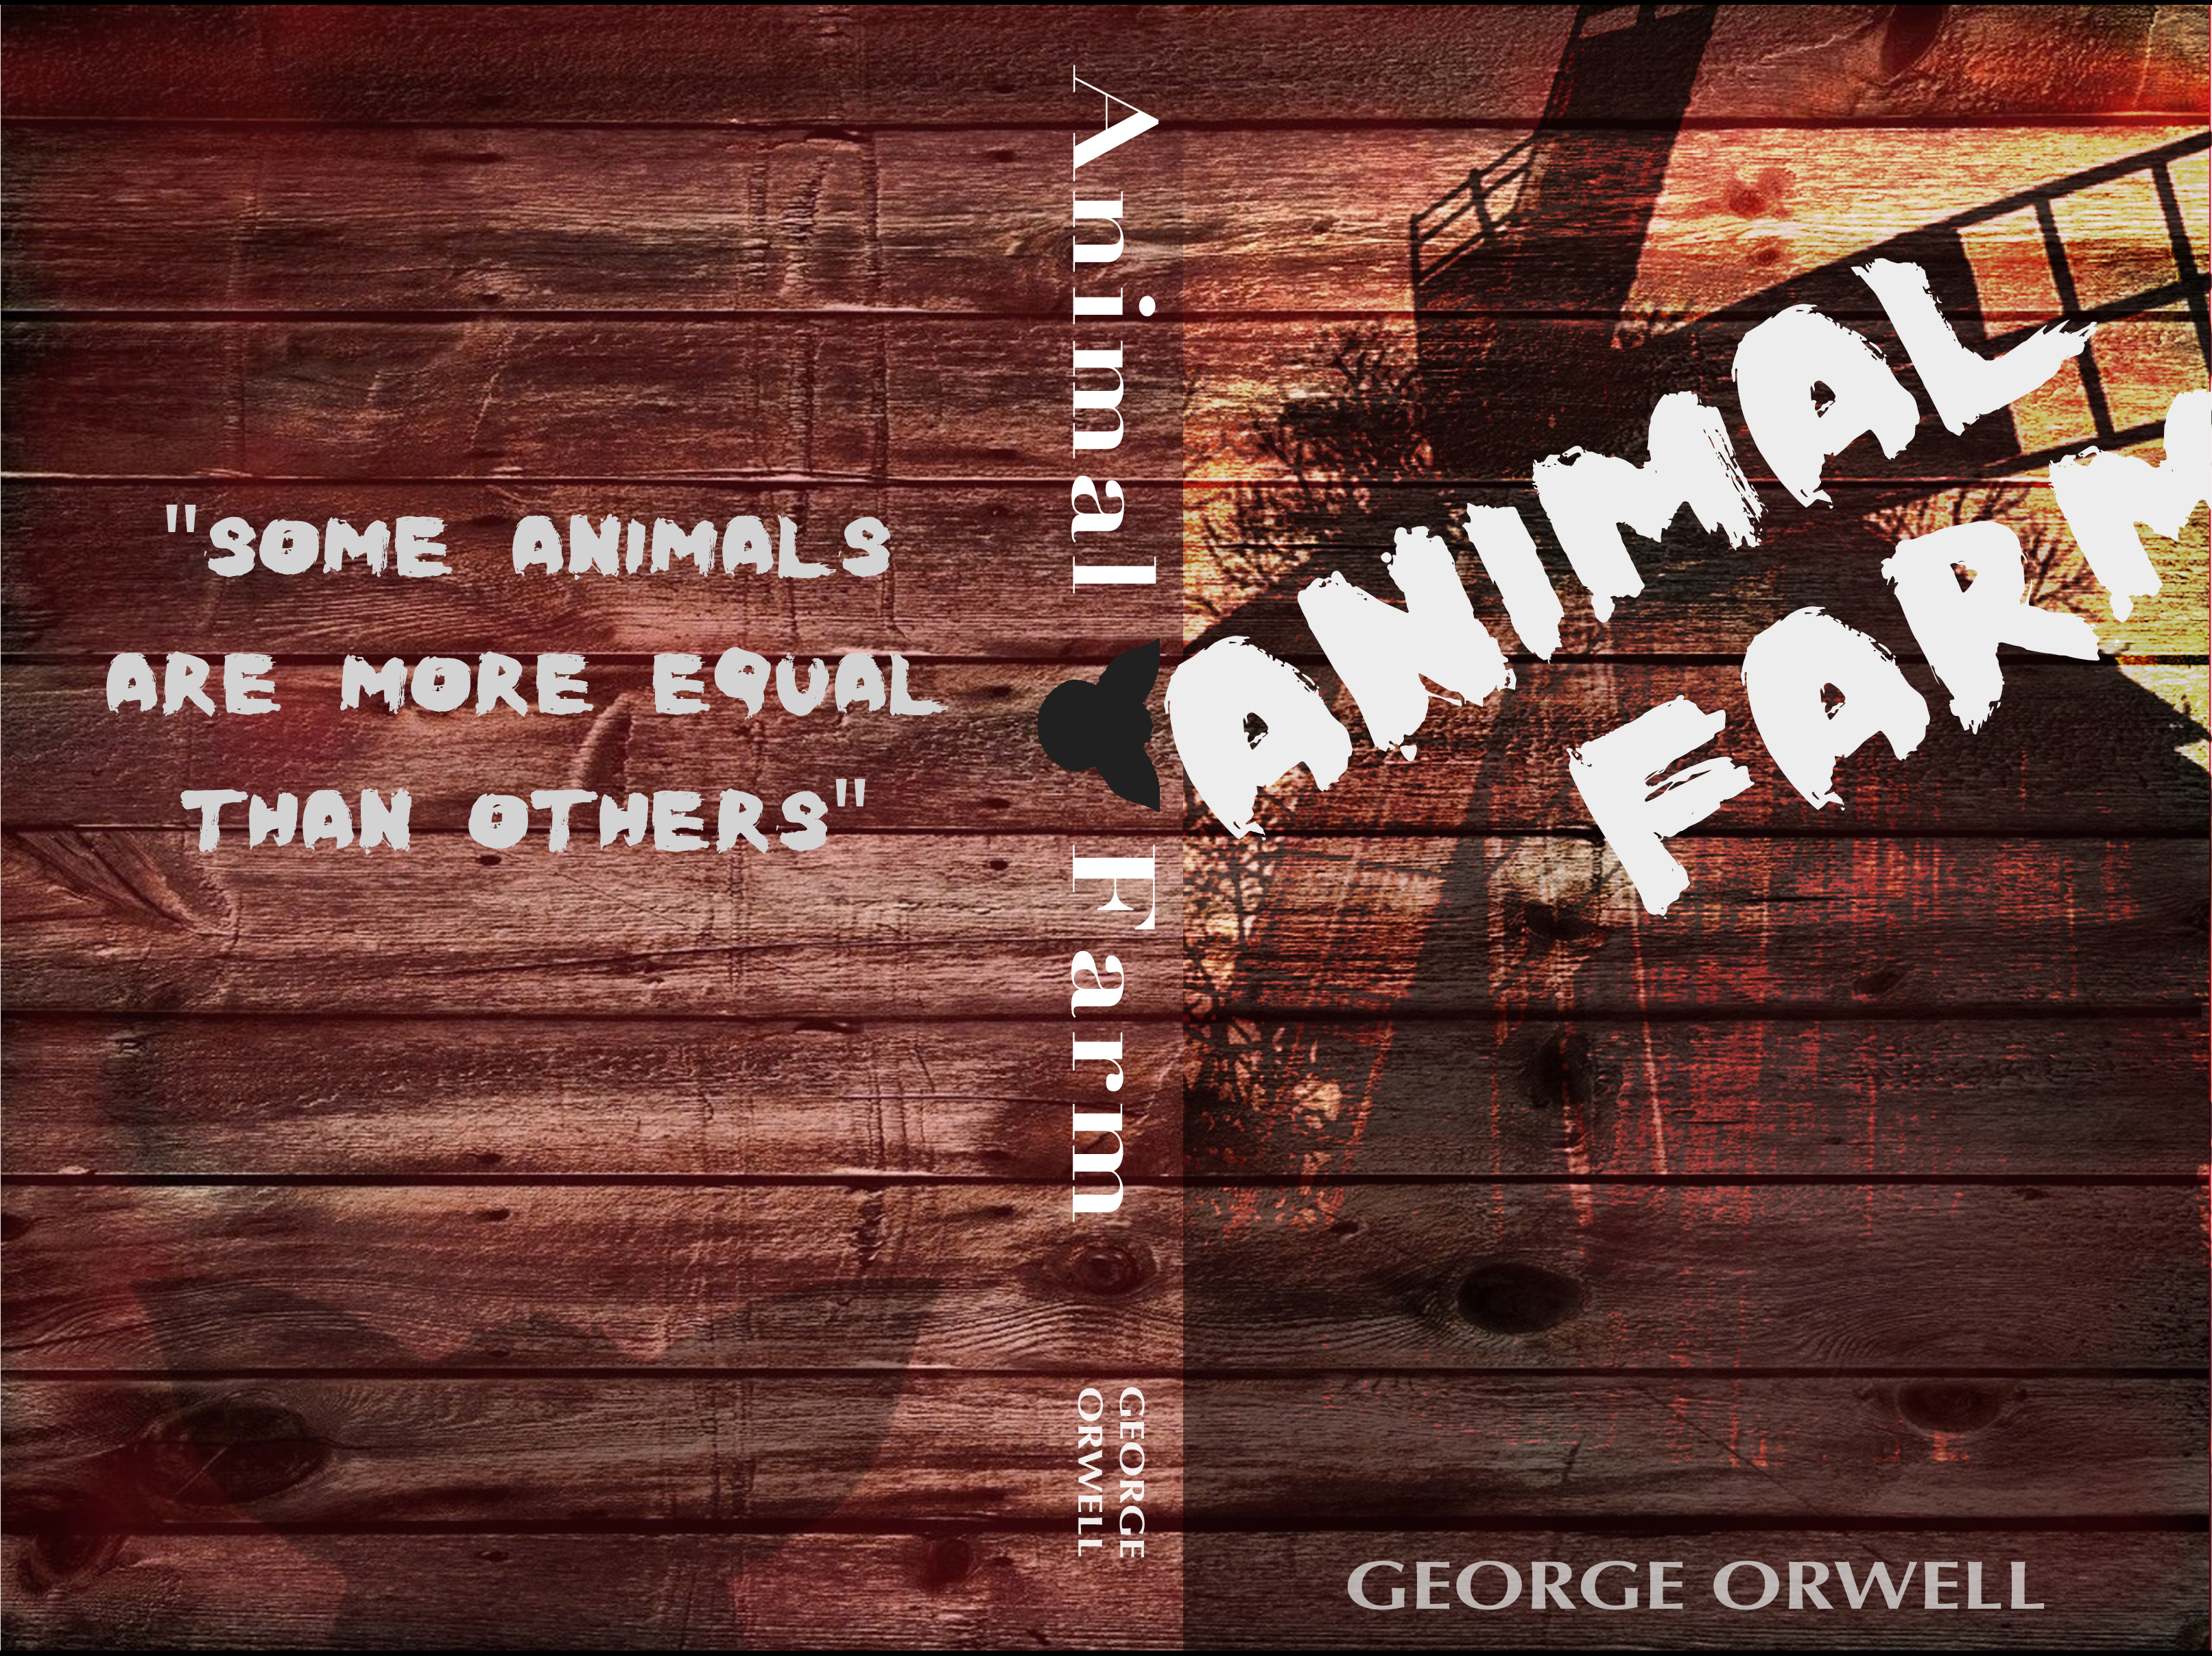 Joshua Moe Animal Farm Book Cover